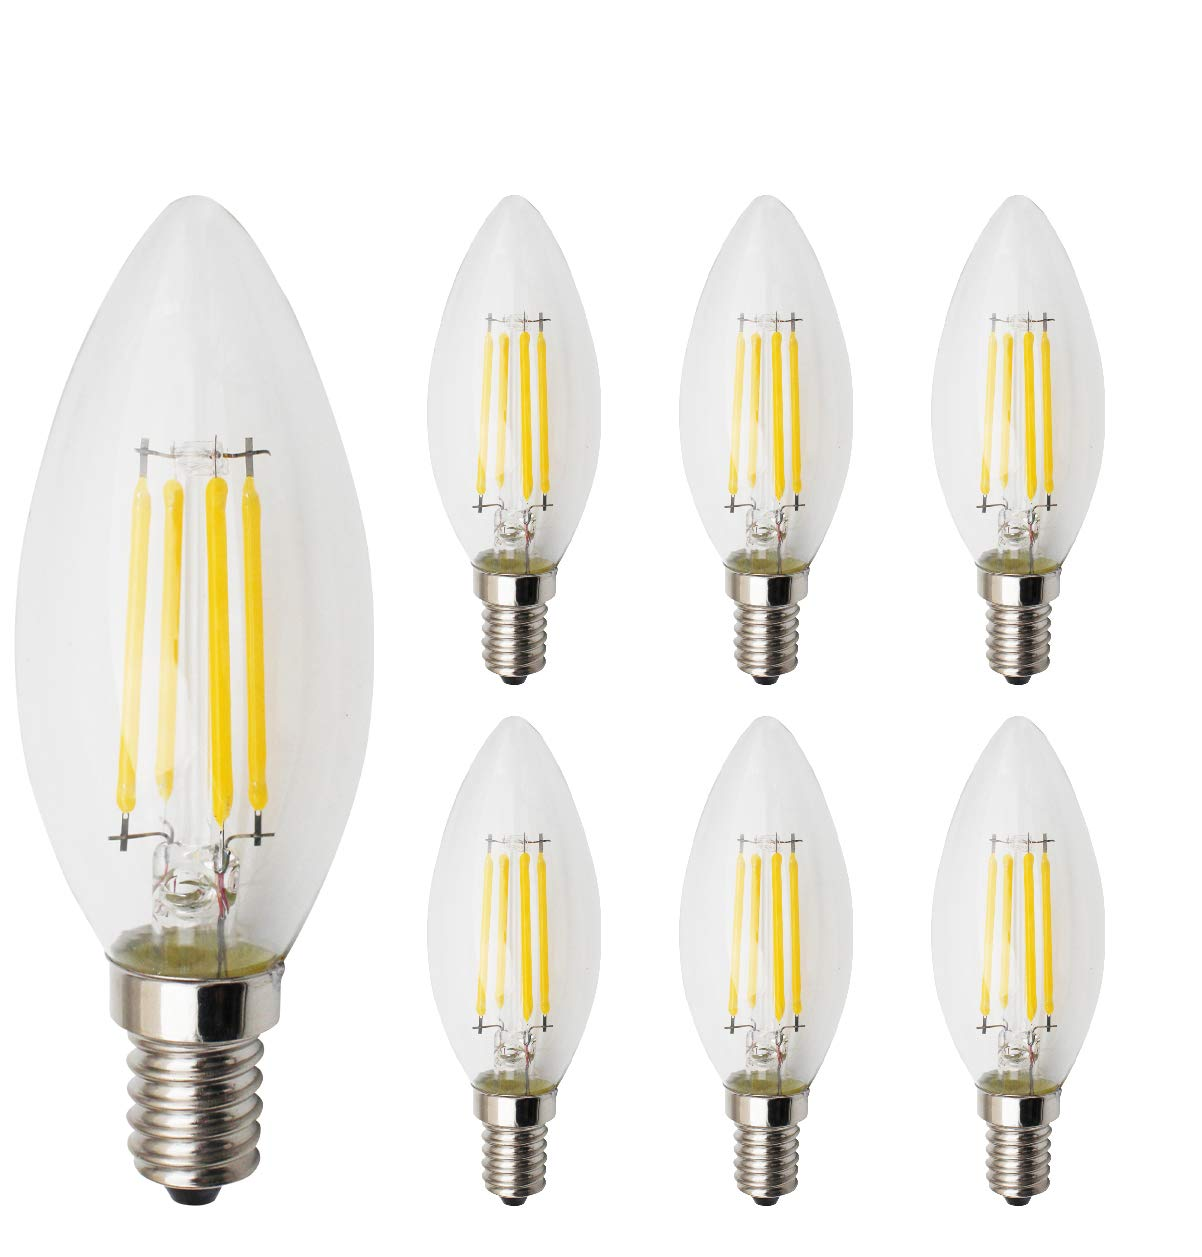 RClorBulb 4W E14 Dimmable LED Filament Candle Bulb Warm White 2700K C35 LED Antique Chandelier Light 40W Incandescent Equivalent for Use in Chandeliers, Wall Sconces,Pendant Lighting - 6 Packs